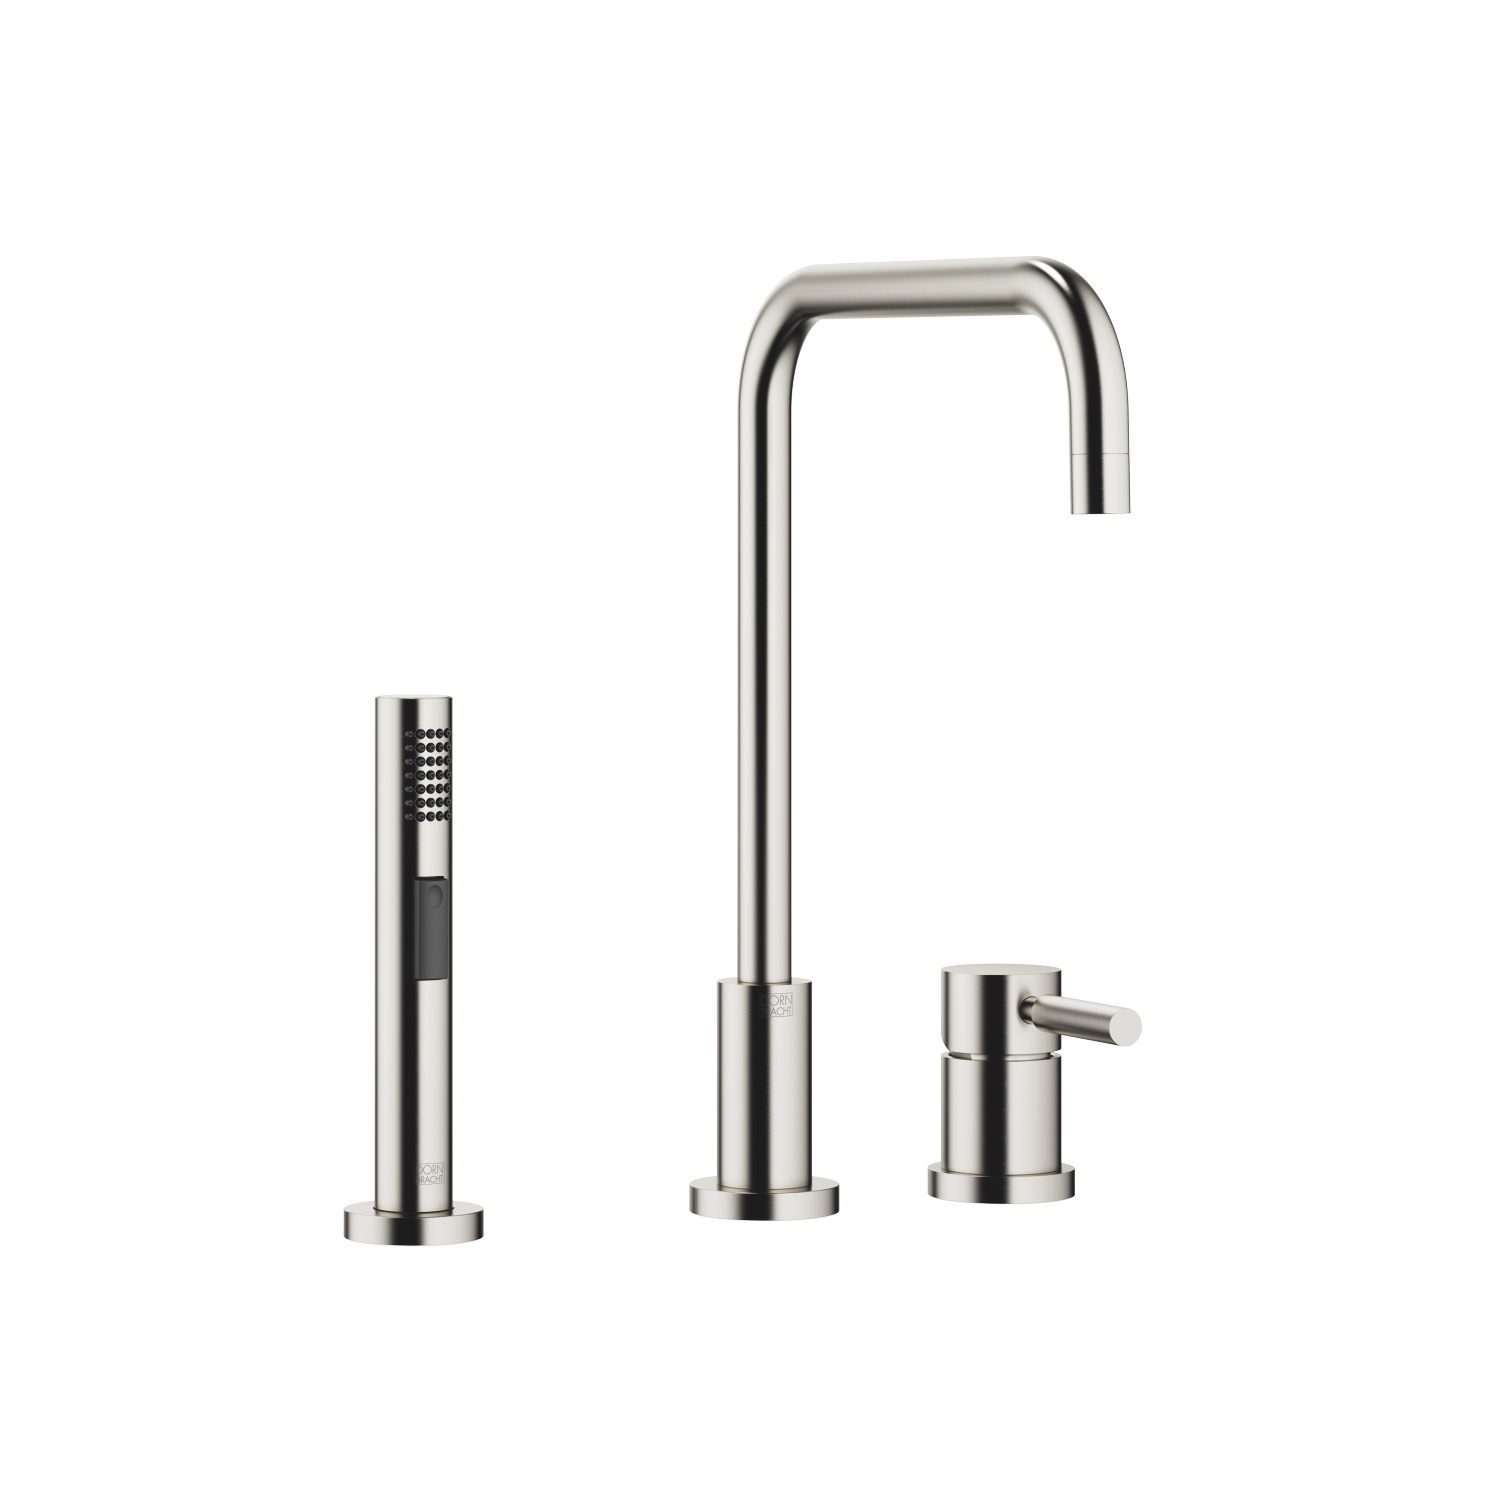 Two-hole mixer with individual flanges with side spray set - platinum matte